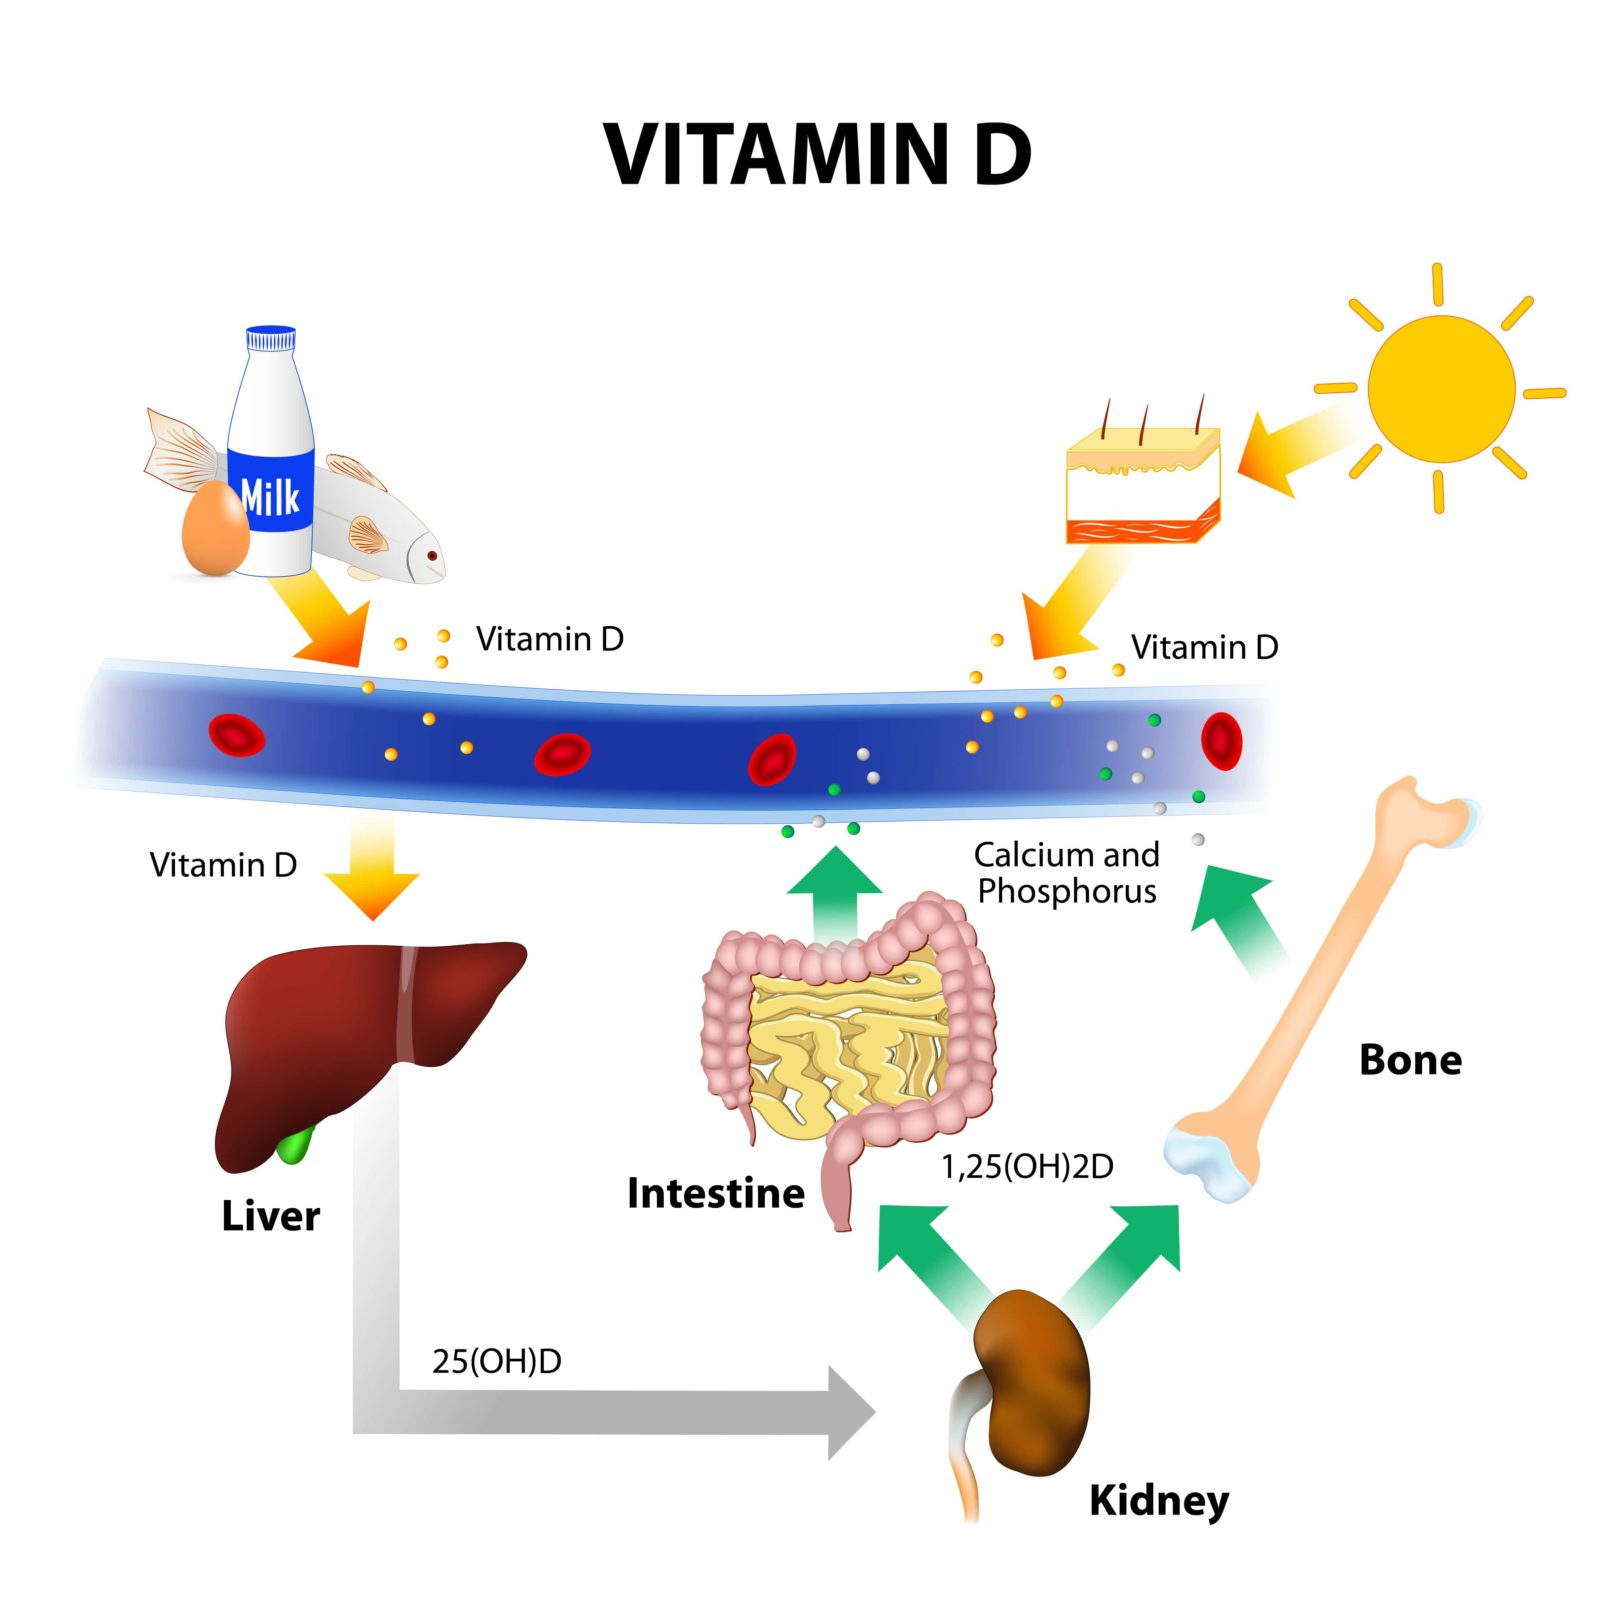 diagram showing how the body absorbs vitamin D